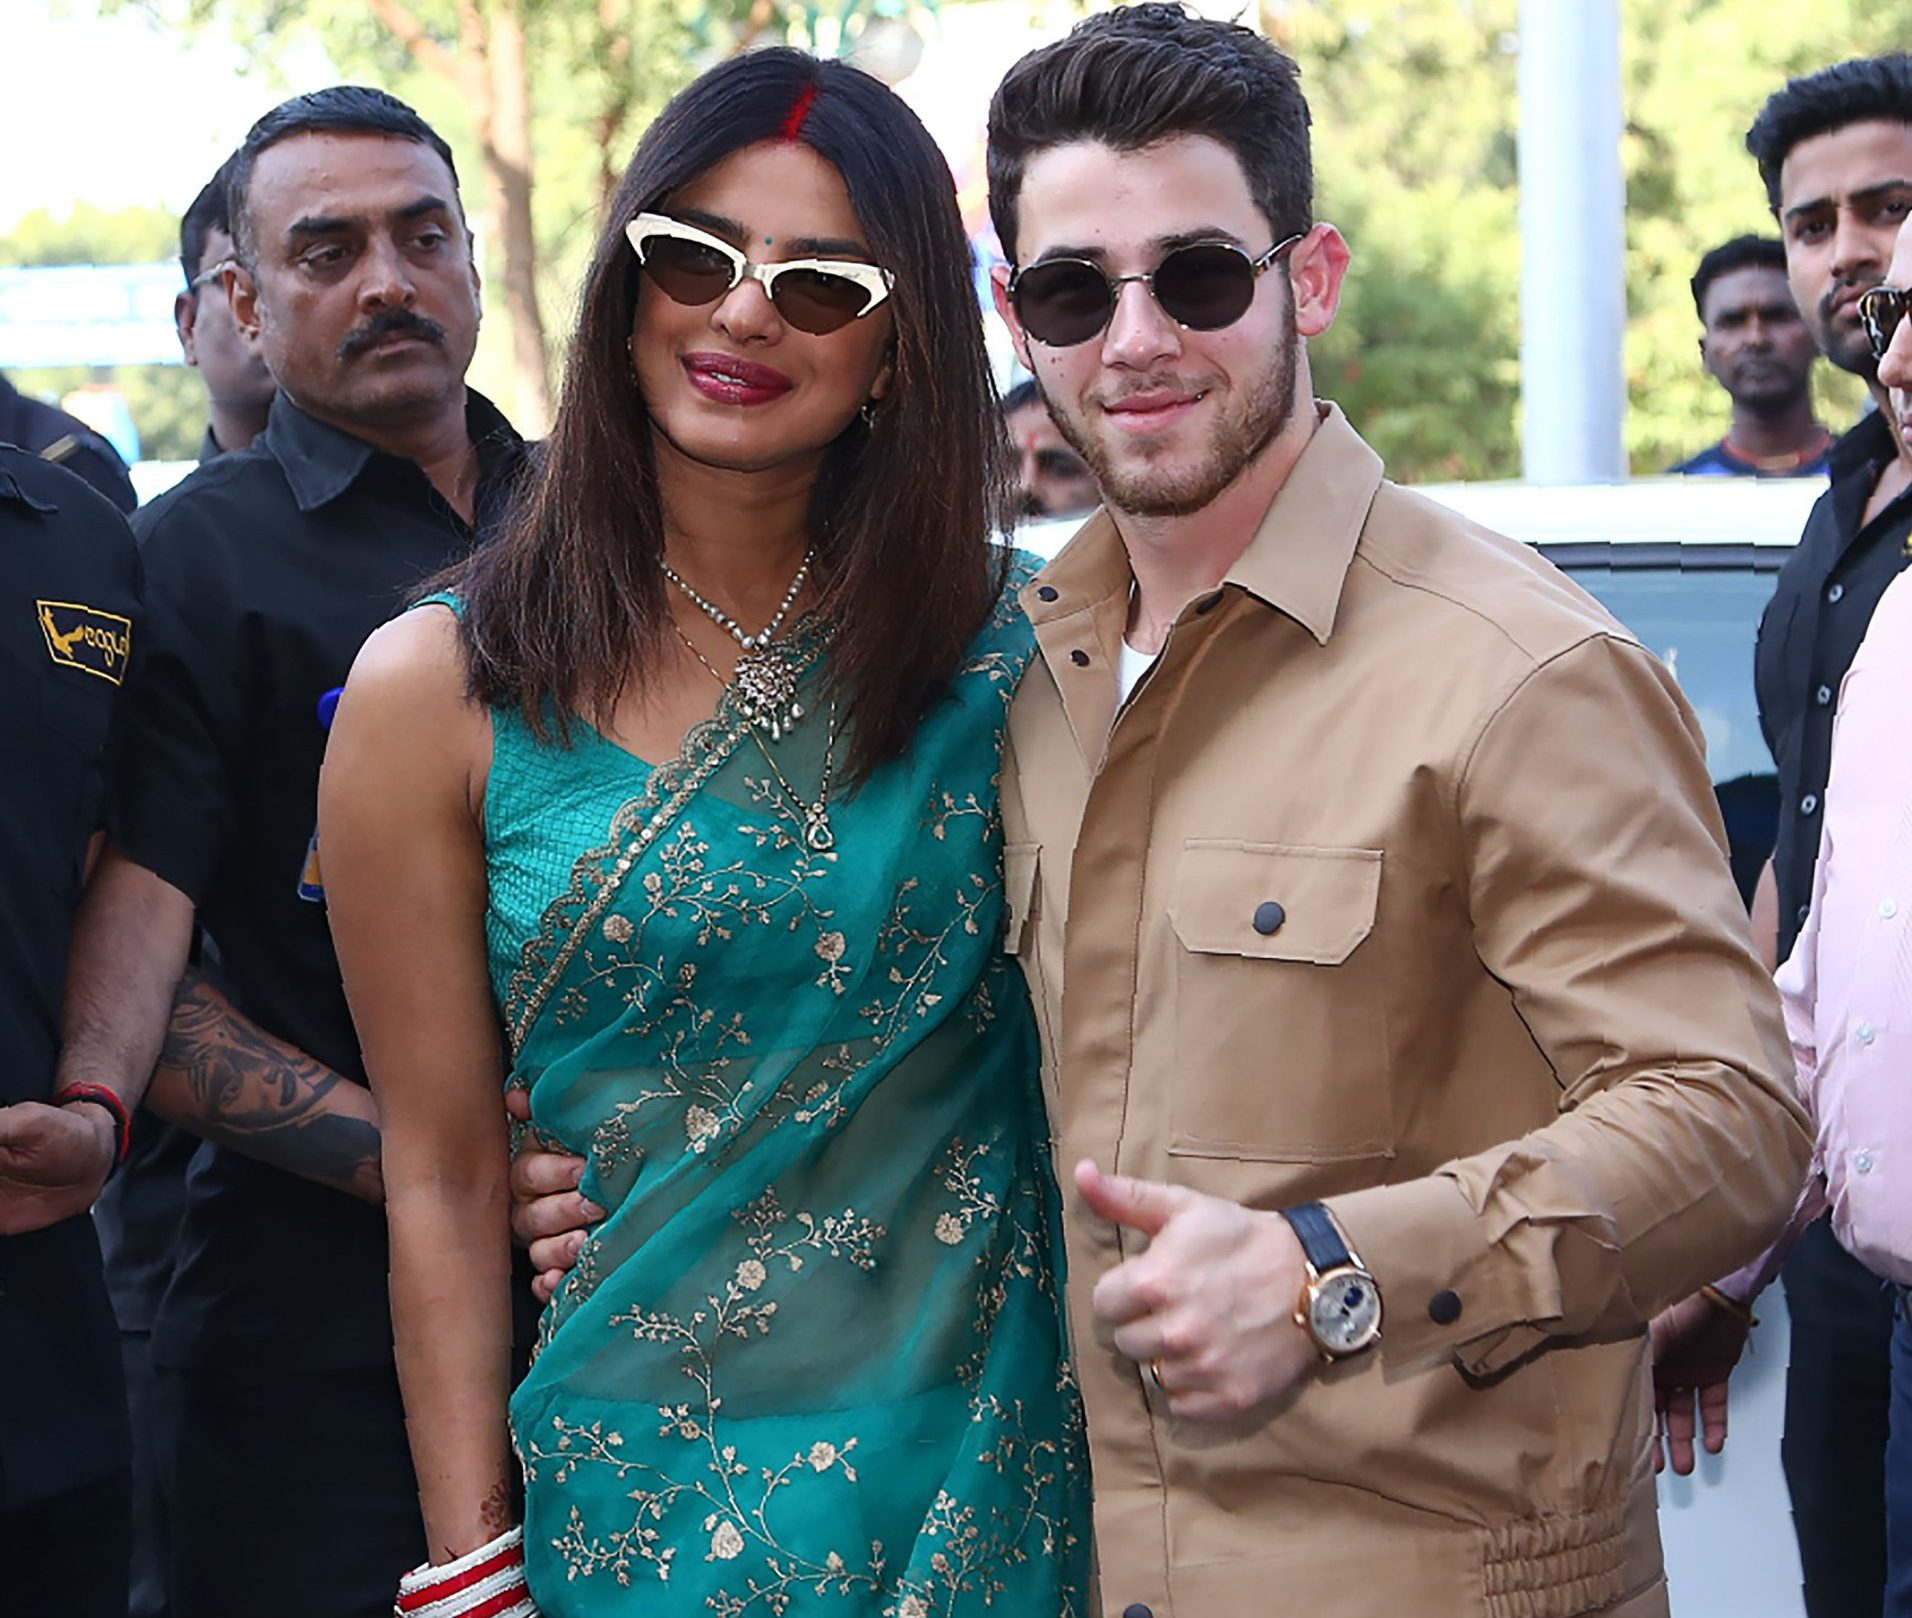 Indian Bollywood actress Priyanka Chopra (C) and US musician Nick Jonas (centre R) pose for a photograph as they leave after their wedding ceremony in Jodhpur in the western Indian state of Rajasthan on December 3, 2018. - Bollywood actress Priyanka Chopra and American singer Nick Jonas hosted an extravagant concert on December 2 for their star-studded wedding guests as the couple tied the knot at a lavish Indian palace. (Photo by - / AFP)-/AFP/Getty Images